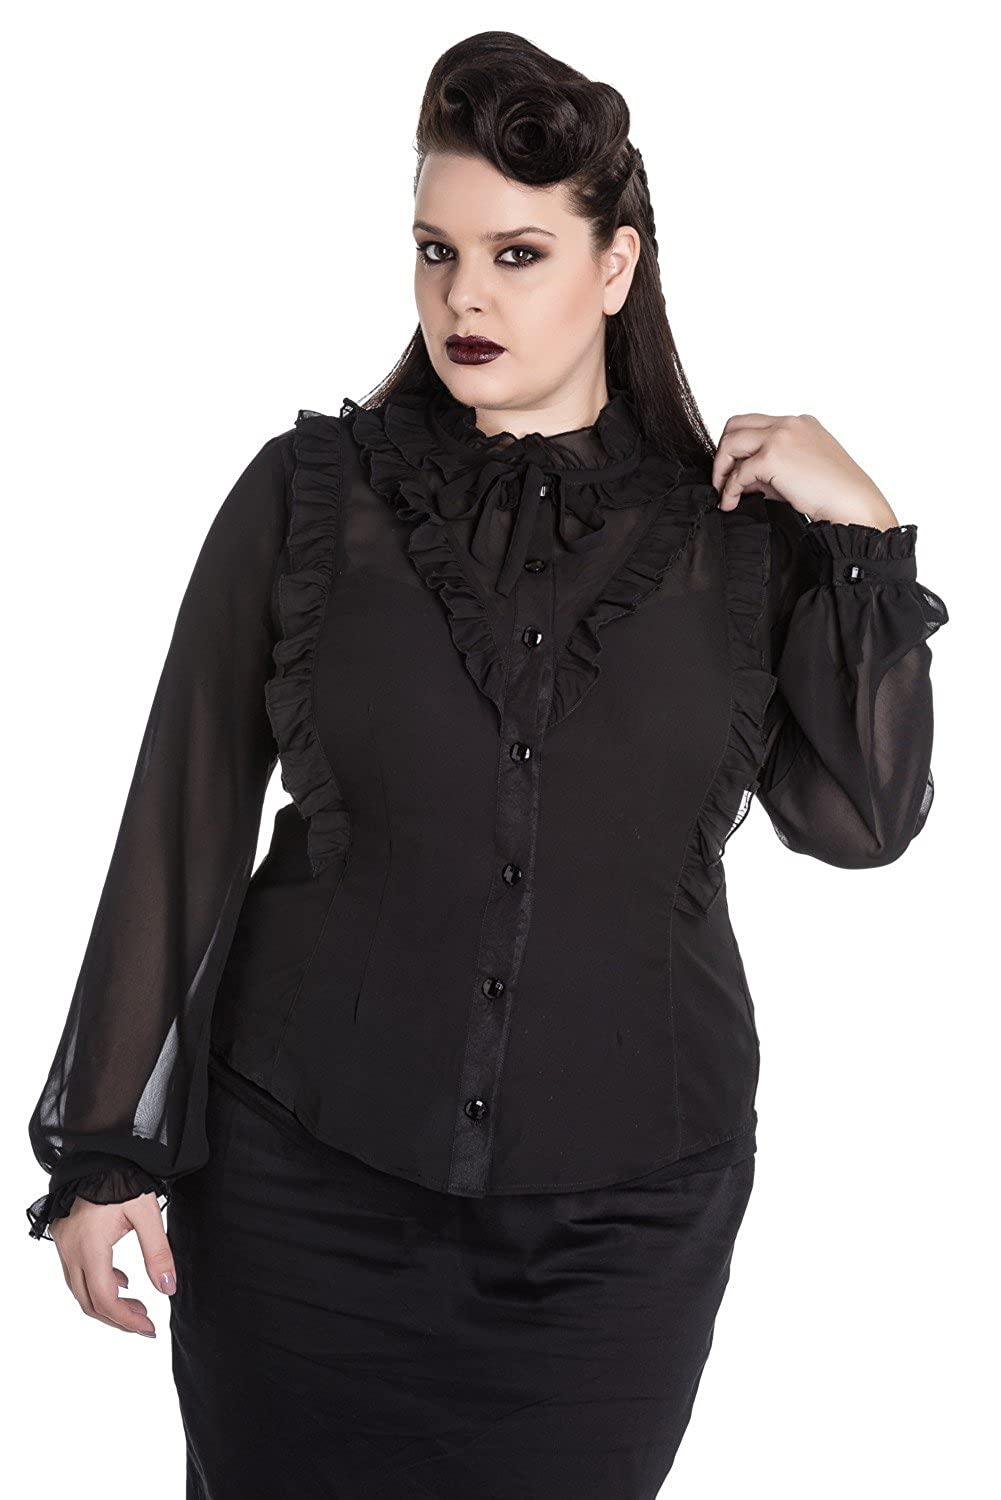 Vintage Retro Halloween Themed Clothing Hell Bunny Demetria Victorian Gothic Burlesque Ruffle Top Black Shirt Blouse $44.99 AT vintagedancer.com